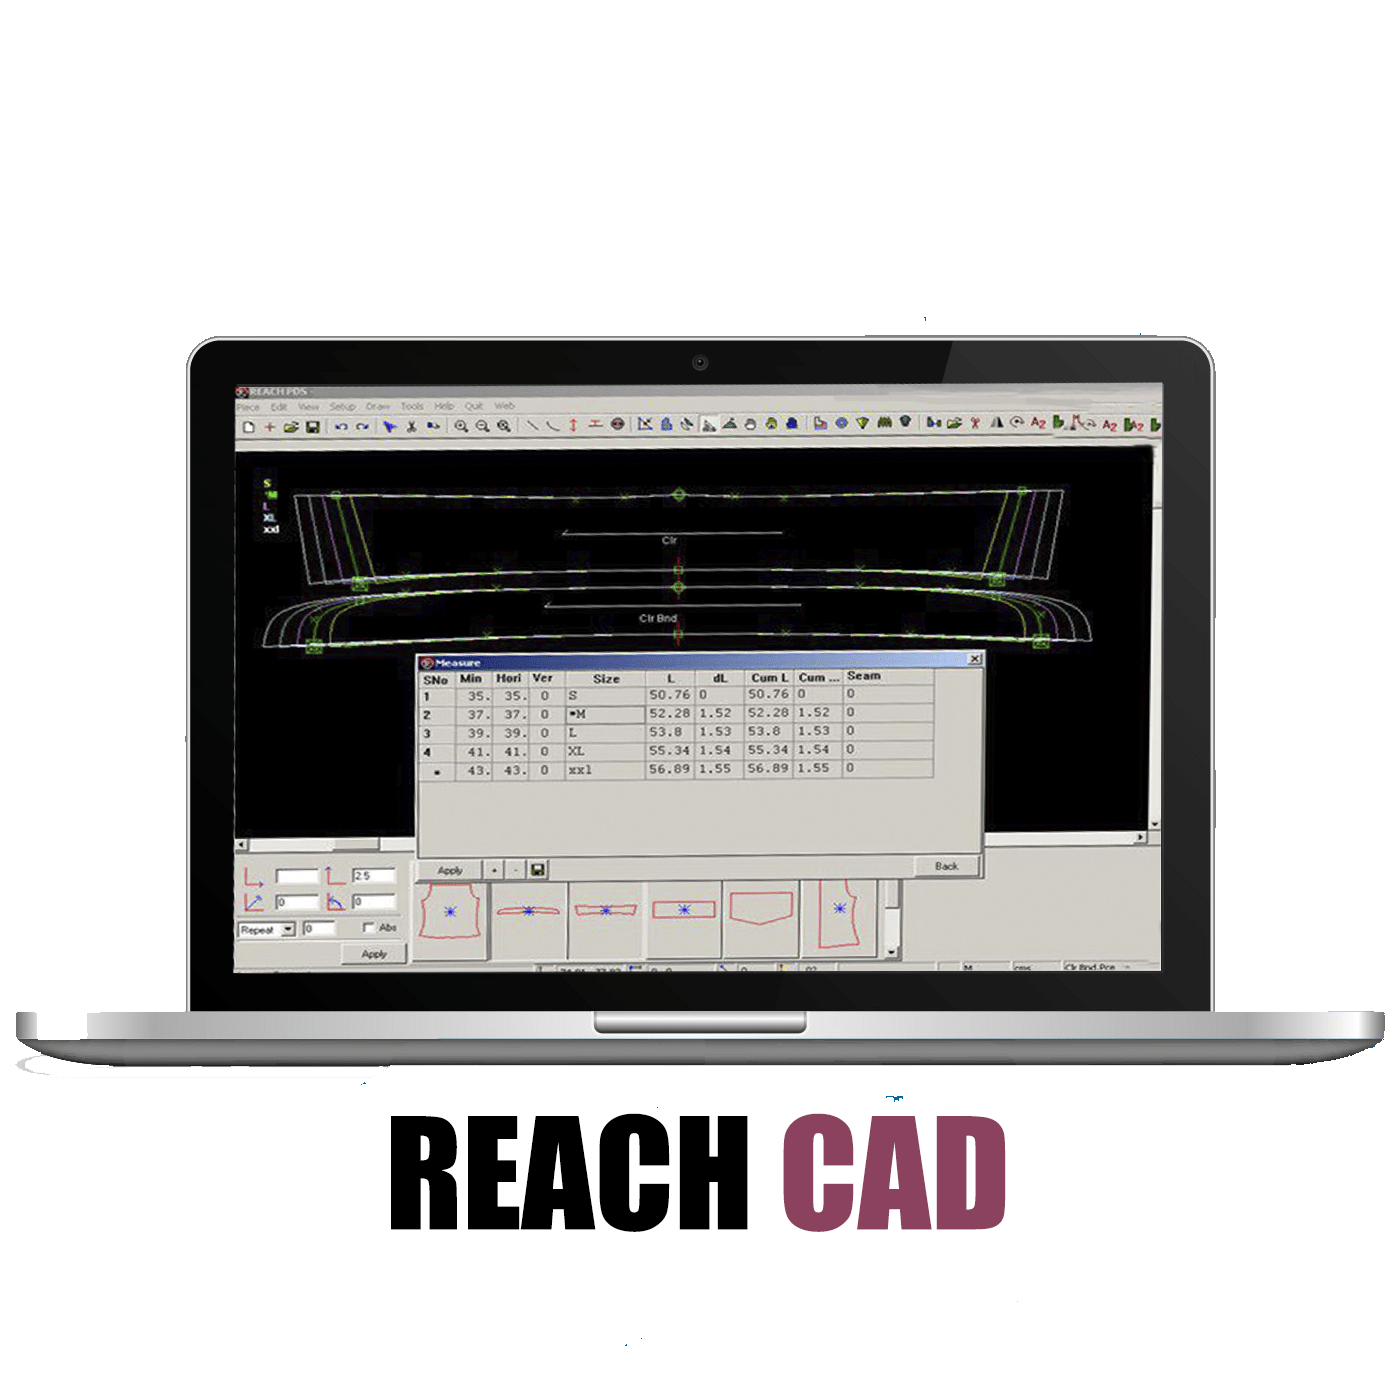 apparel-cad-reach-cad-1